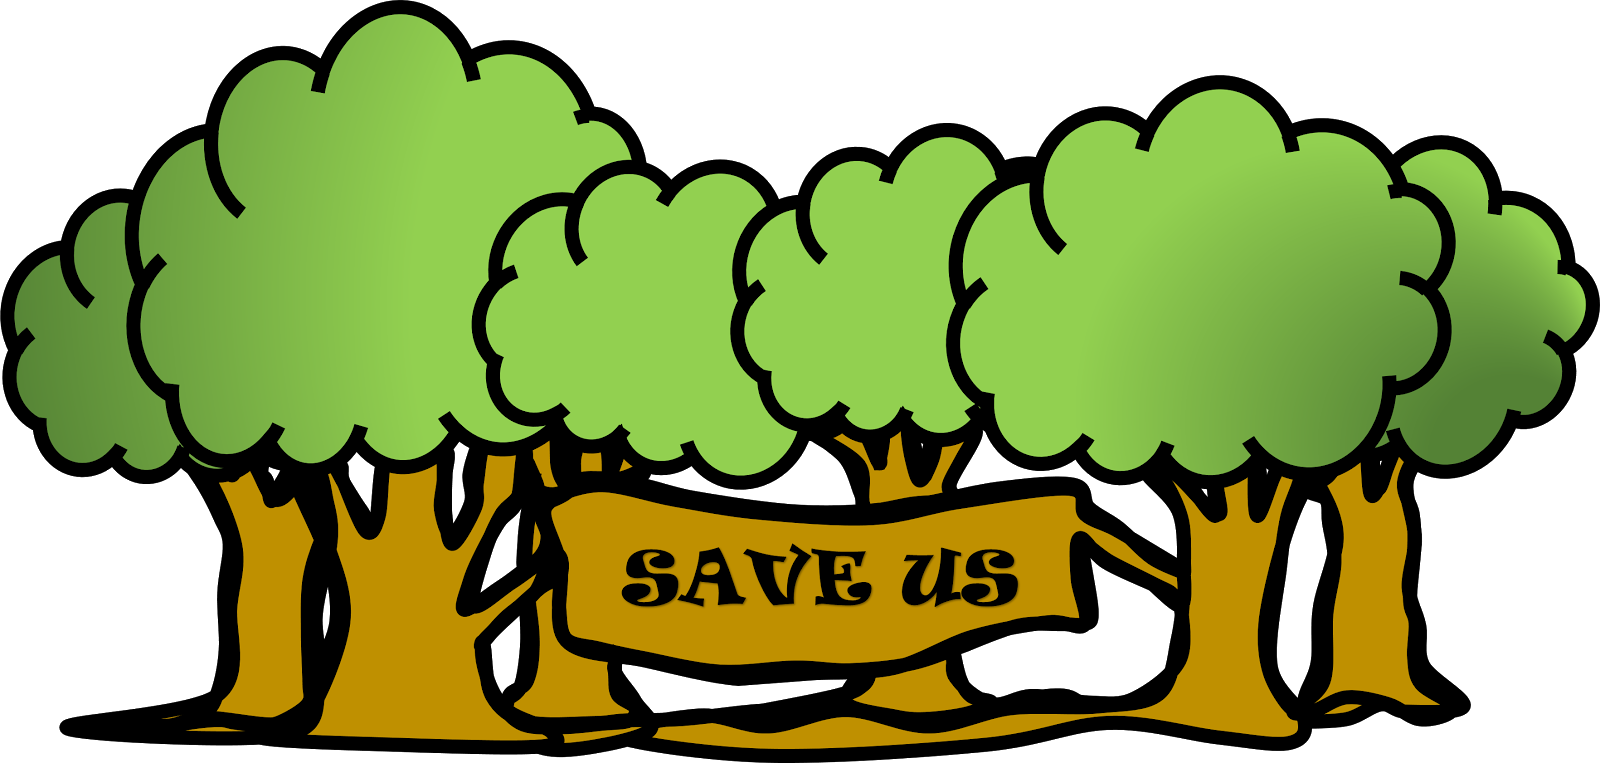 Save a tree clipart - ClipartFest picture download